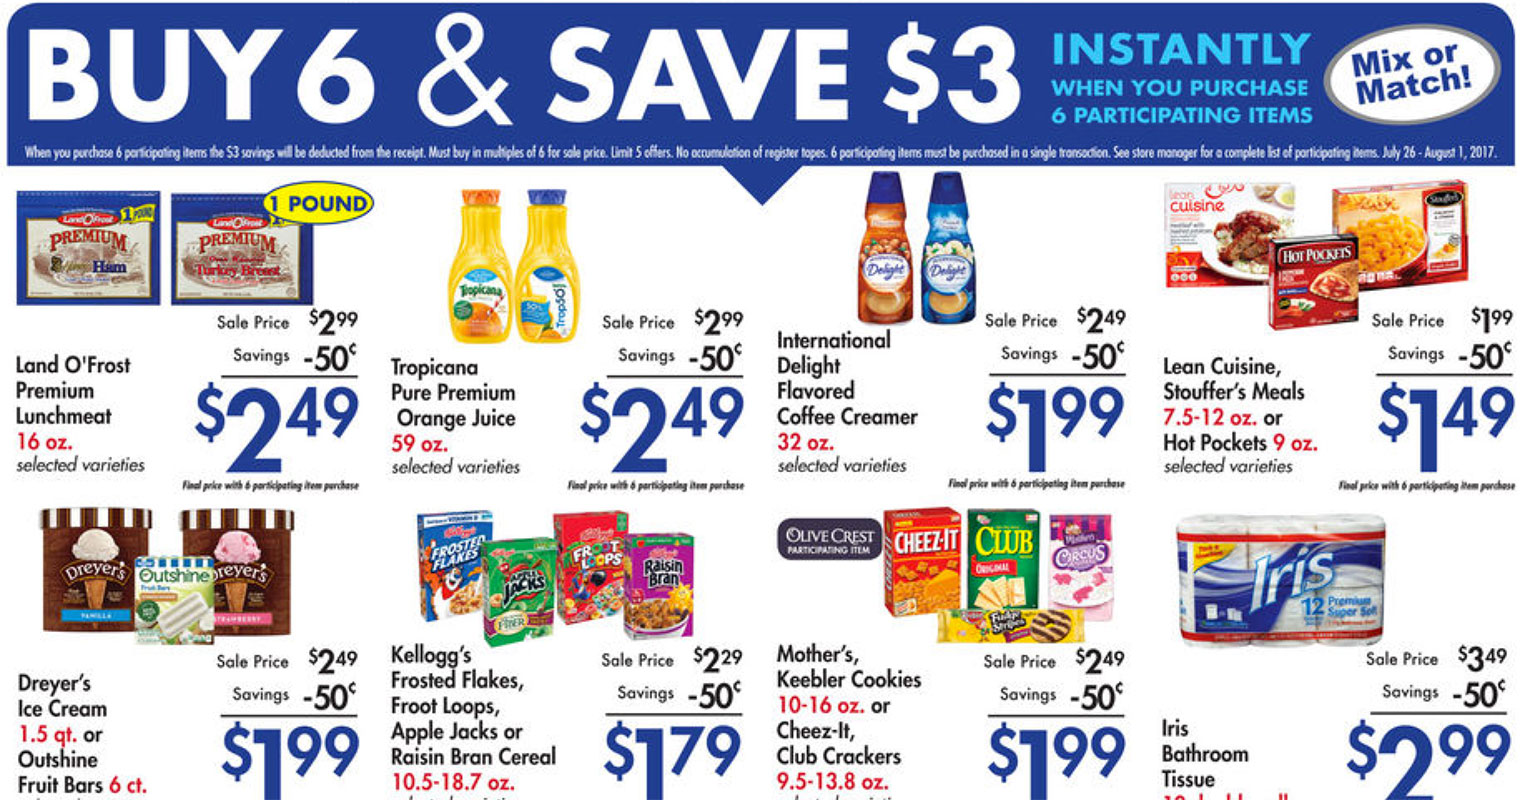 Promotions intensify as deflation subsides | Supermarket News